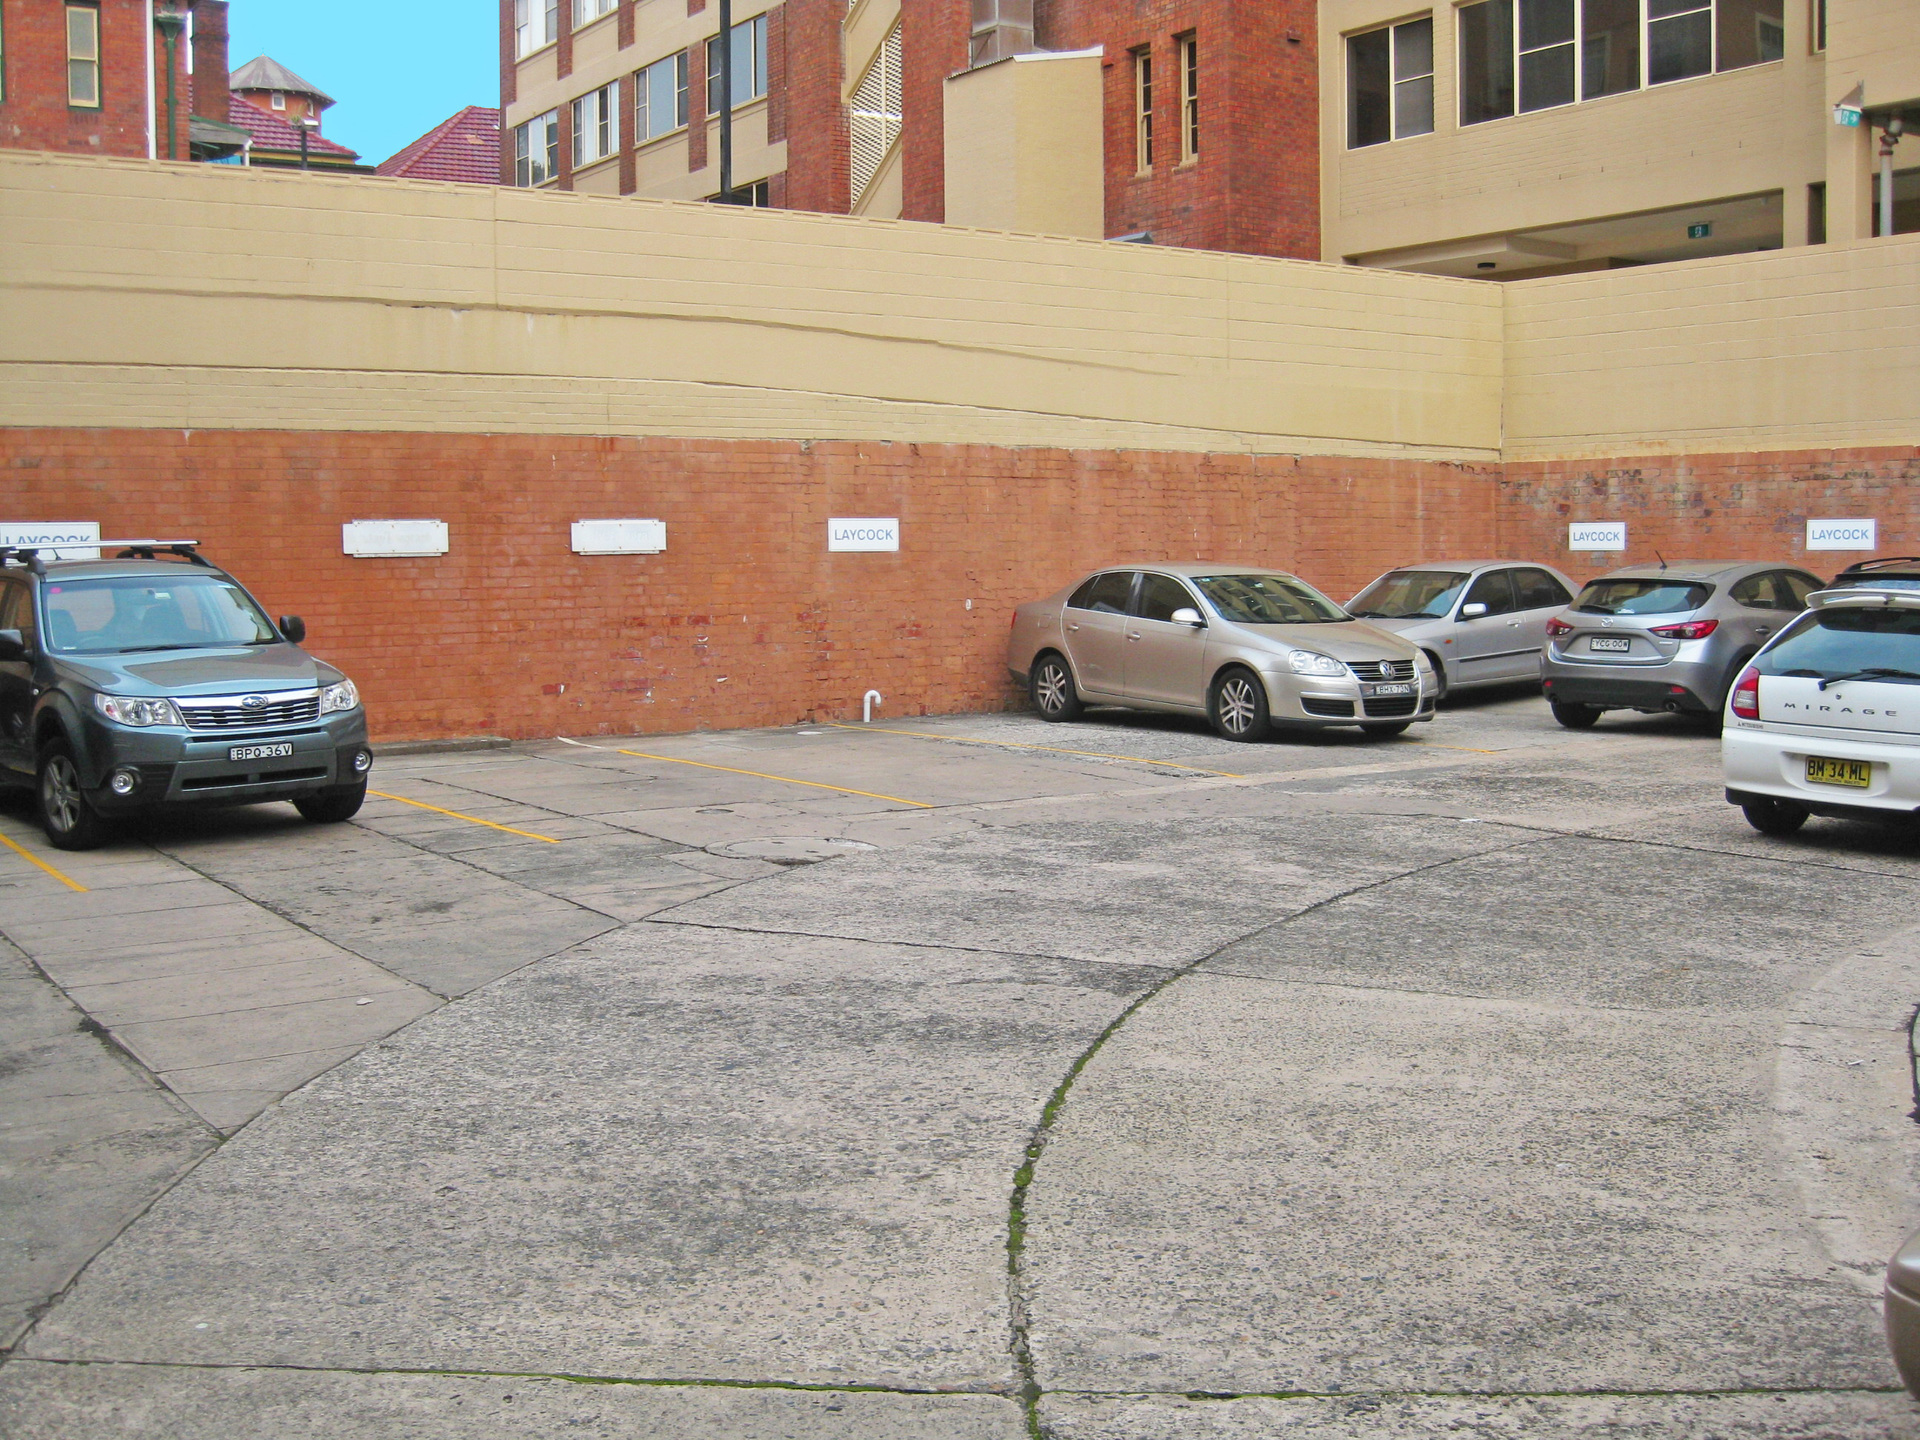 CBD Office With 6 Car Parks – YES 6!!